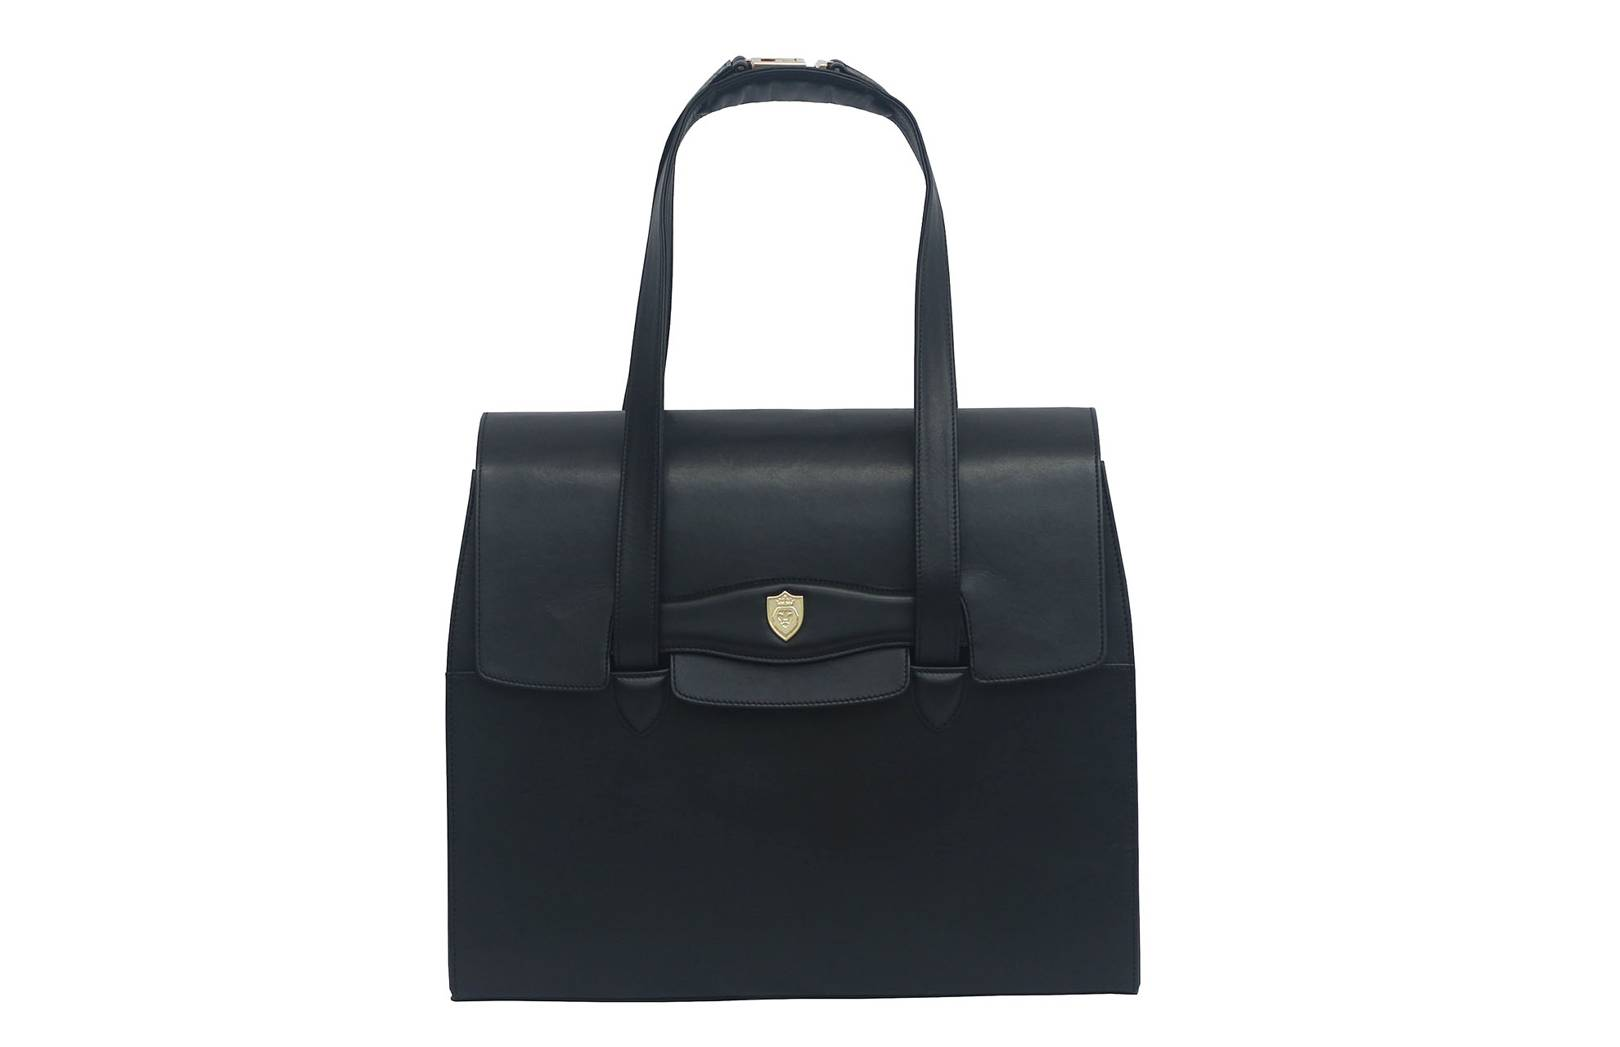 36b983be0719 Laptop Bags For Women | The Best Work Backpacks And Leather Totes | British  Vogue